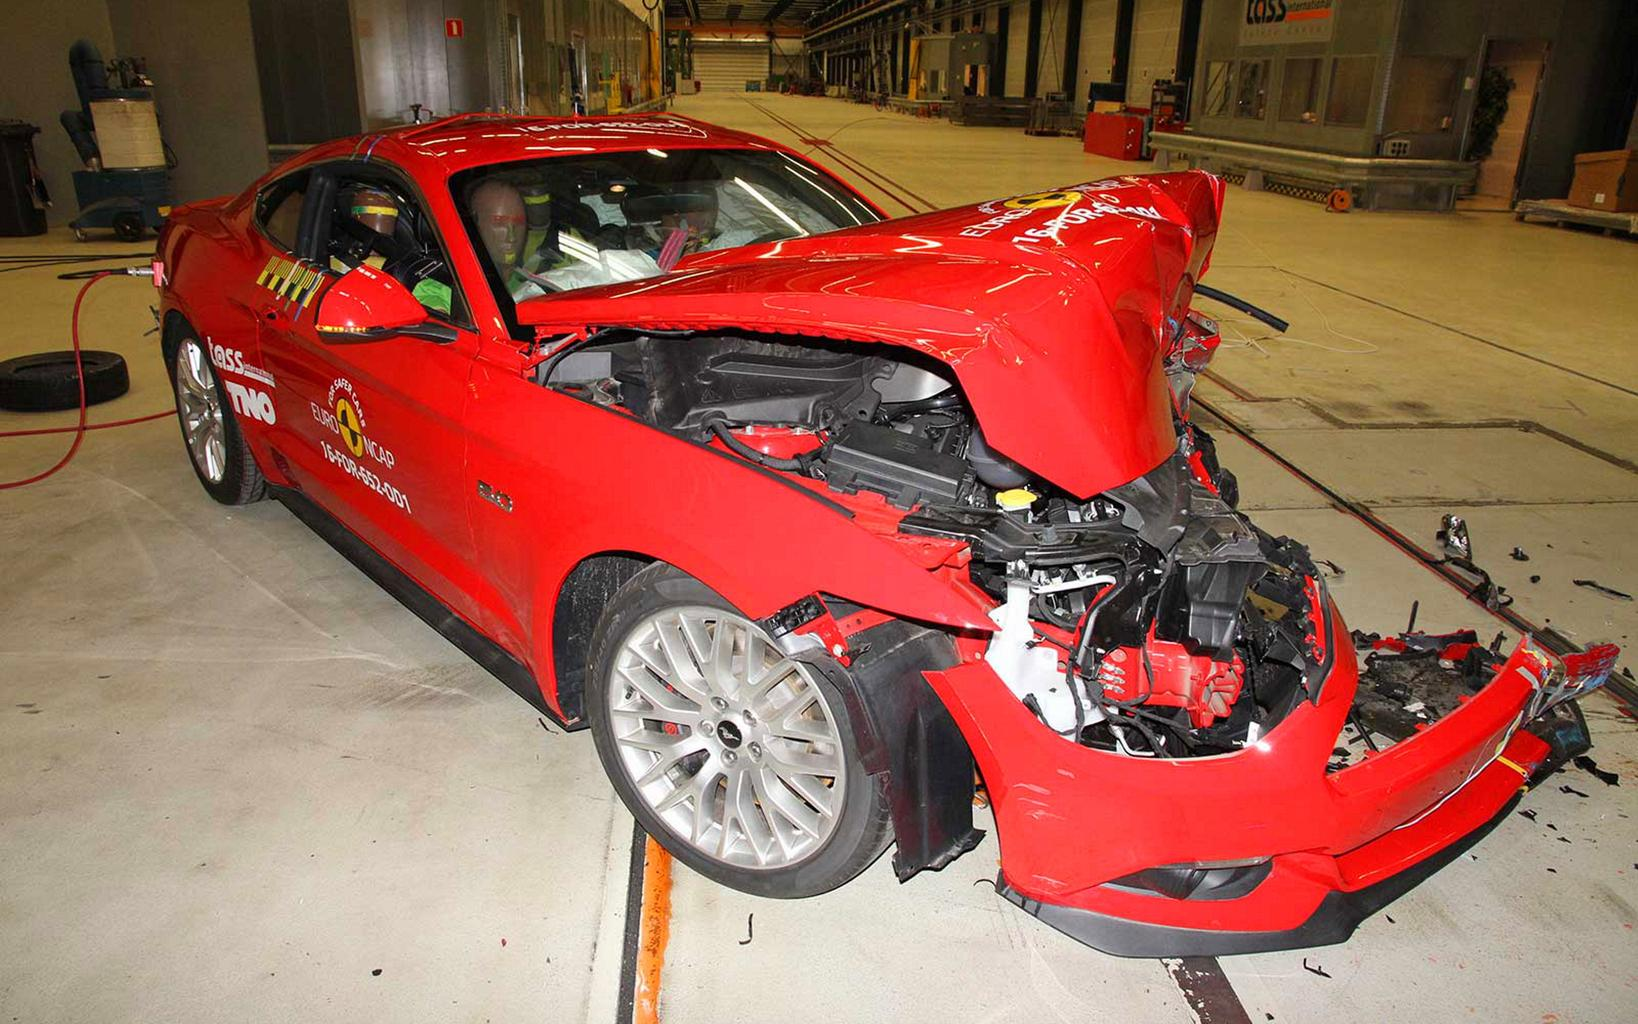 Ford Mustang given disappointing two-star safety rating by Euro NCAP